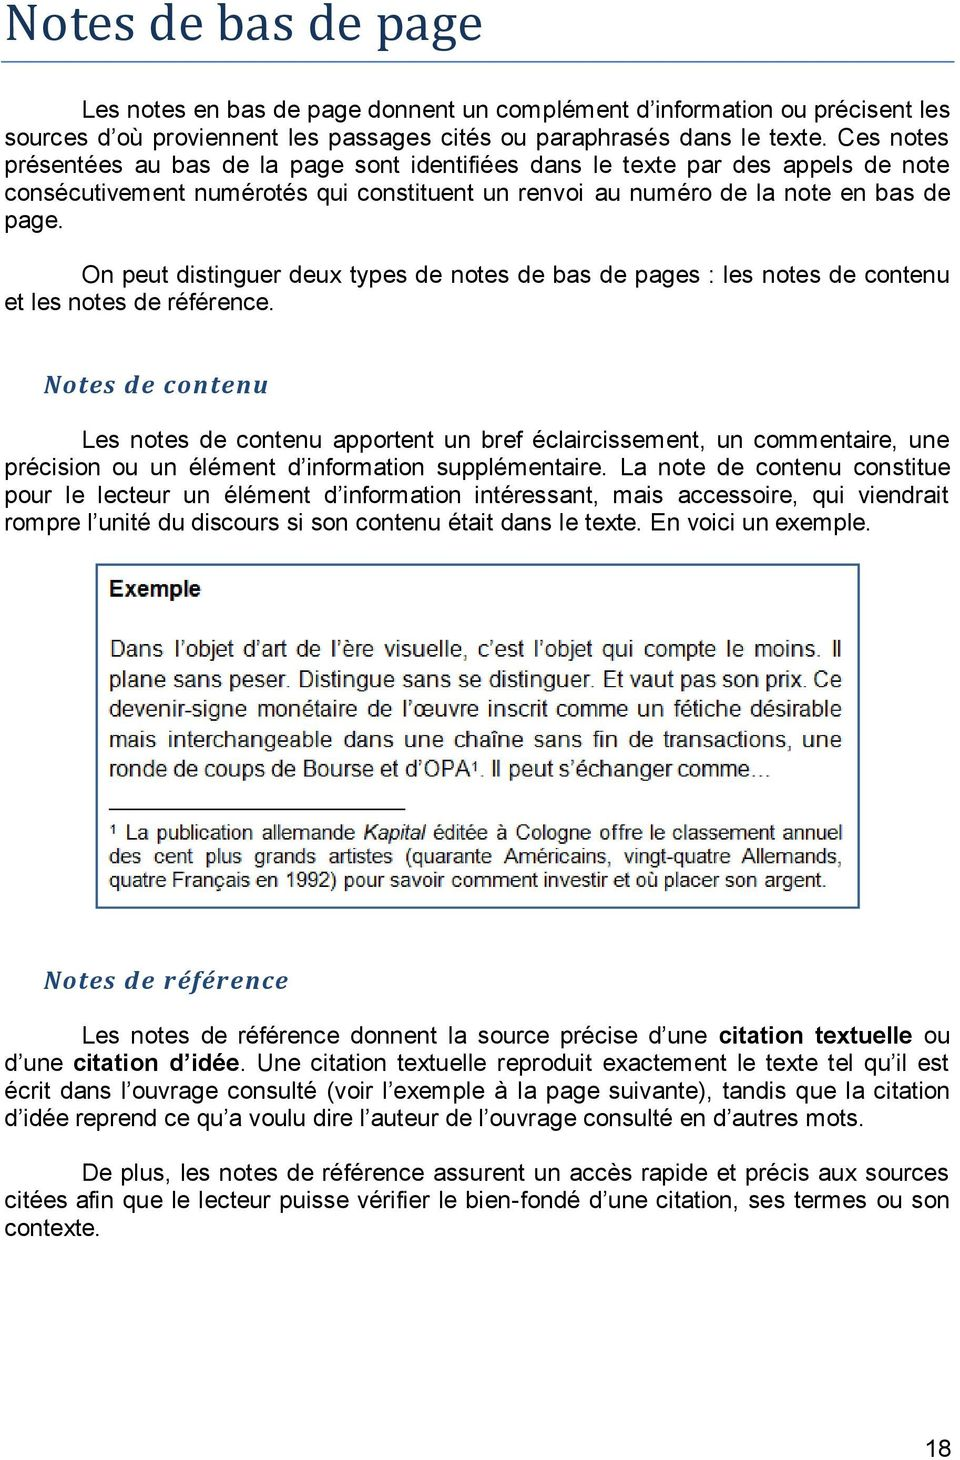 On peut distinguer deux types de notes de bas de pages : les notes de contenu et les notes de référence.